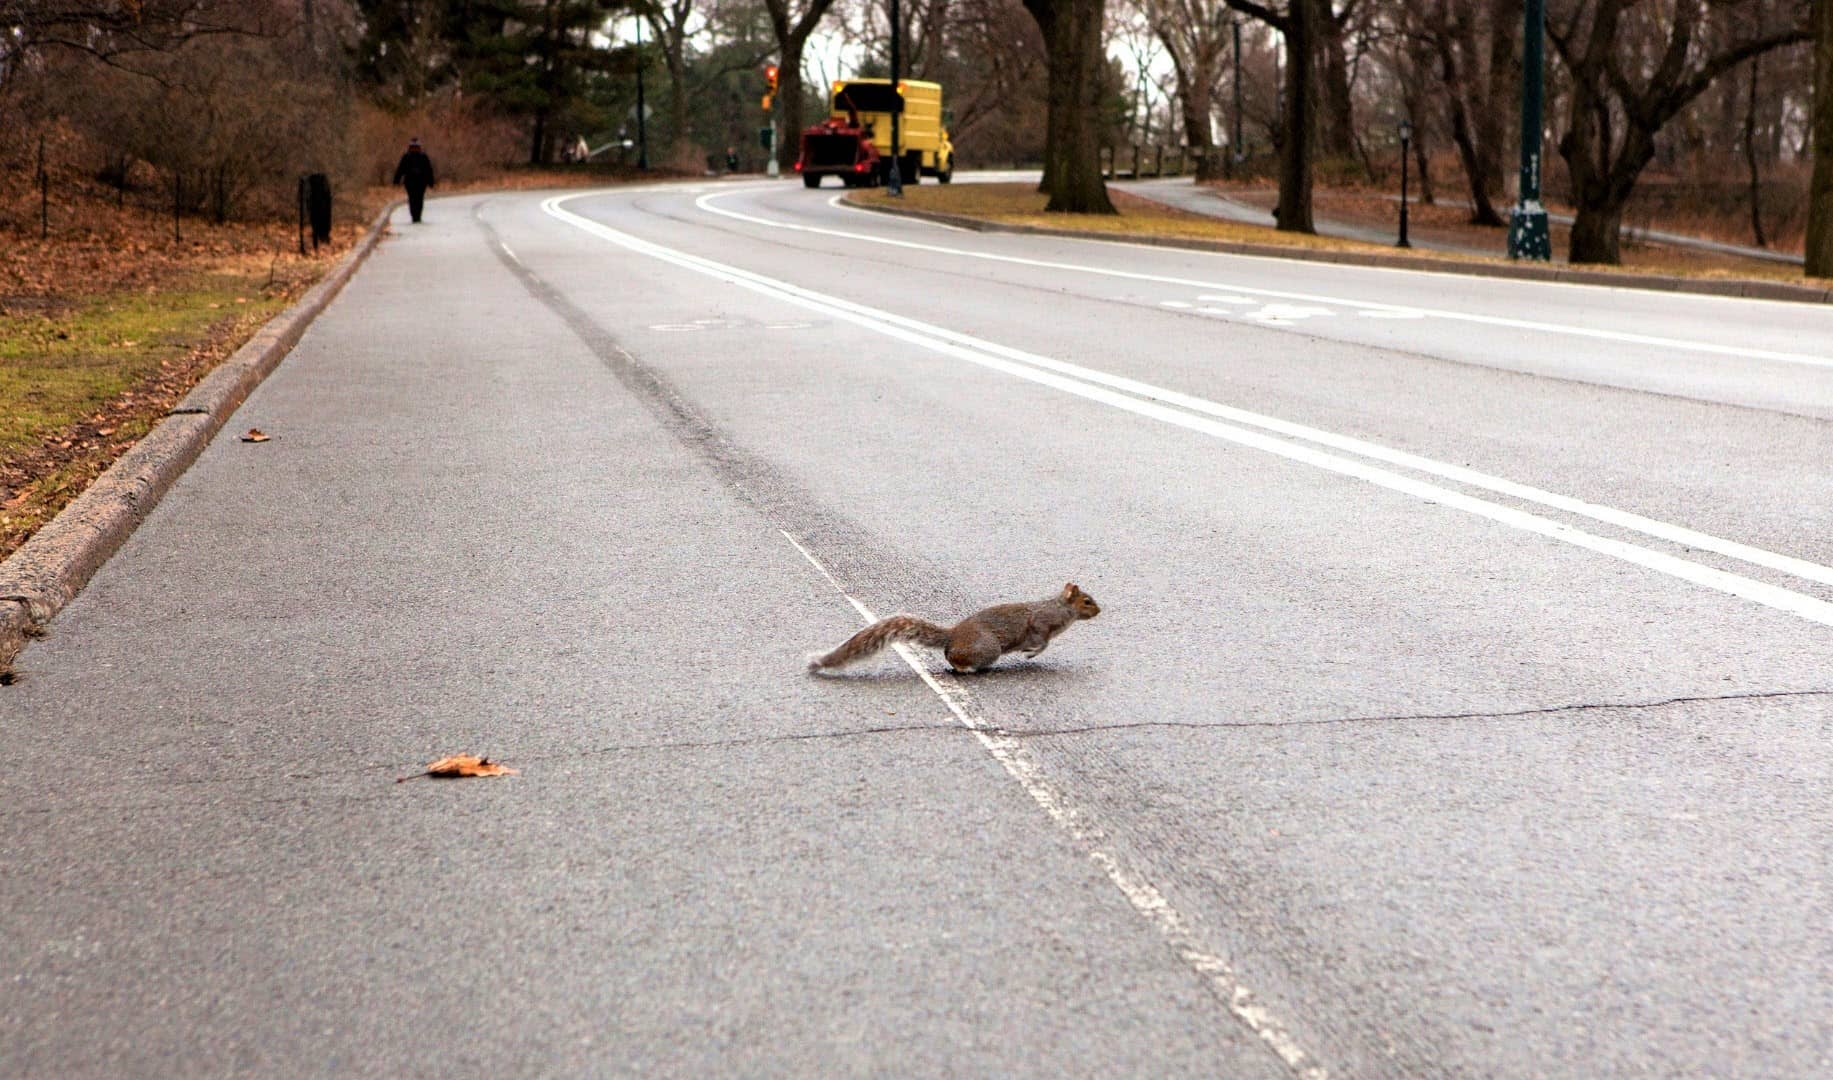 Why Do Squirrels Run In Front Of Cars & Stop In The Middle of The Road